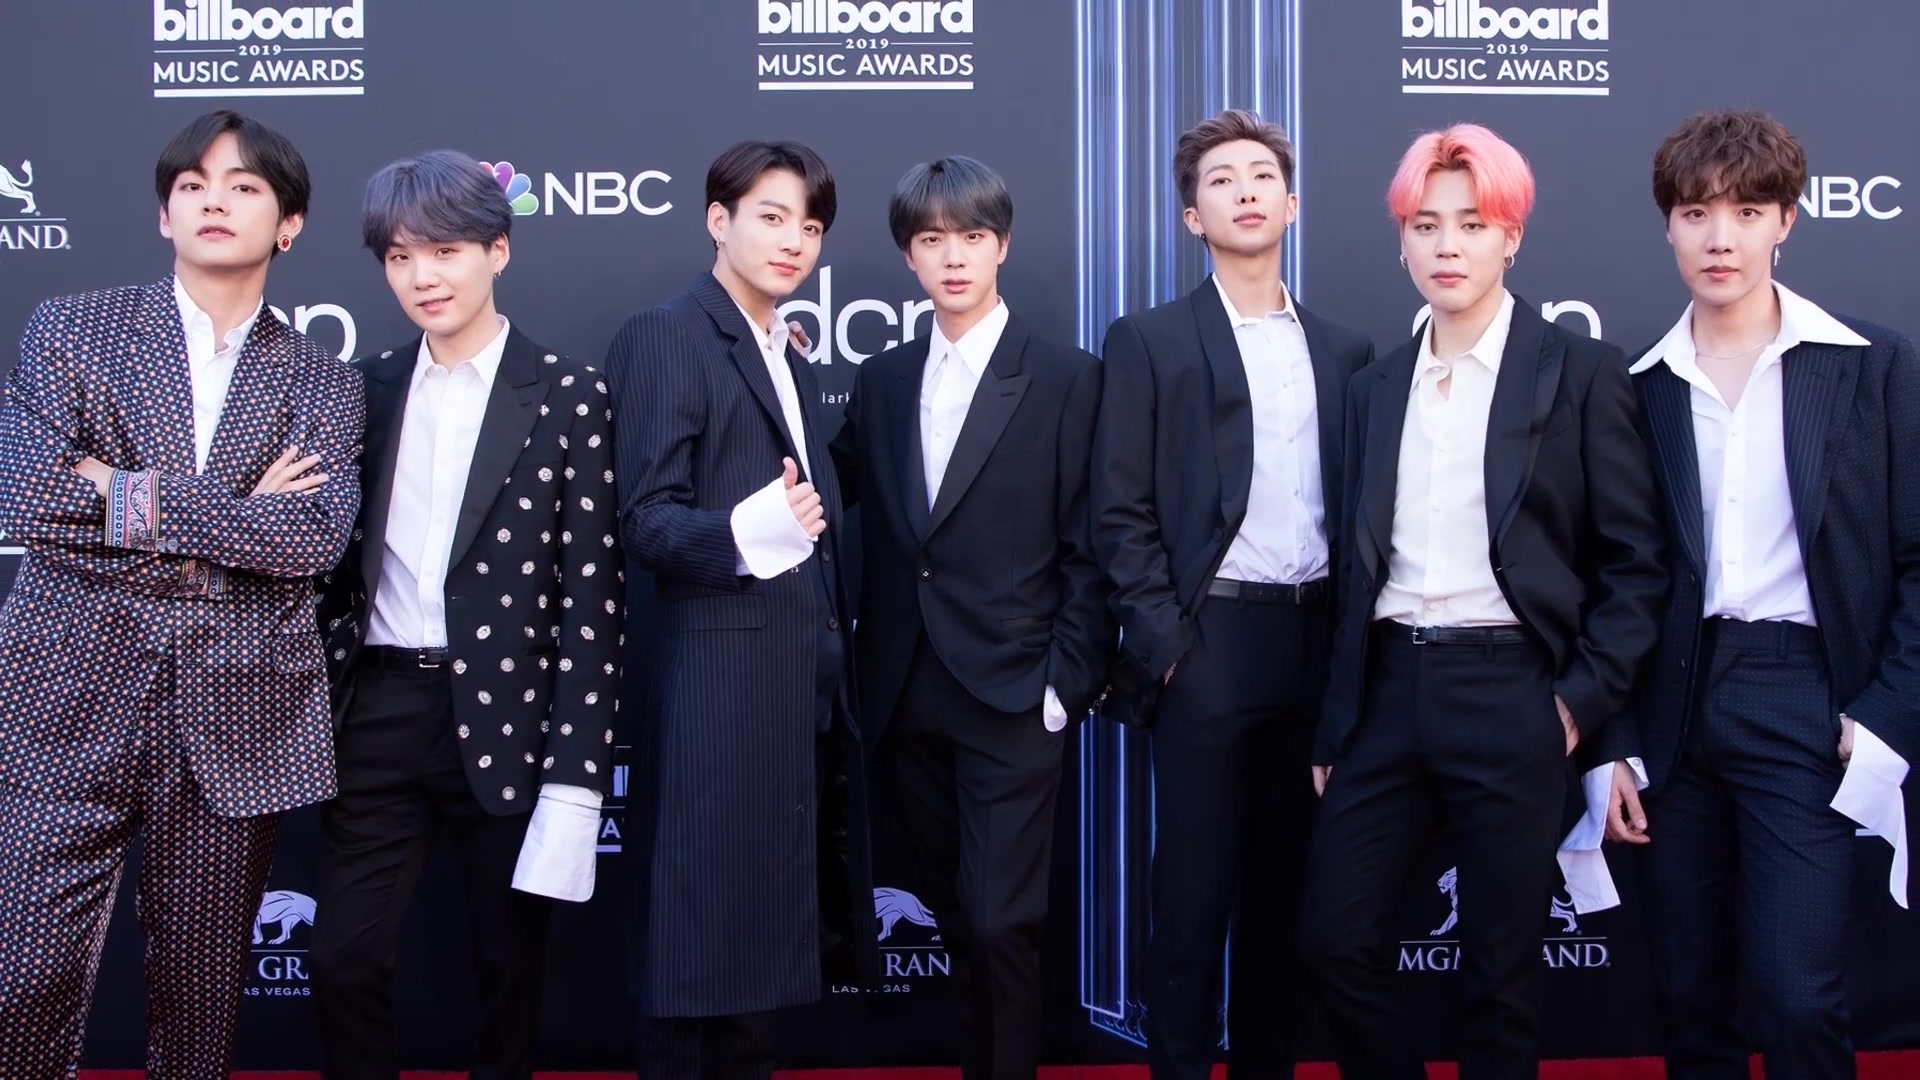 Dapat Penghargaan Dari Wall Street Journal, BTS Sepopuler The Beatles